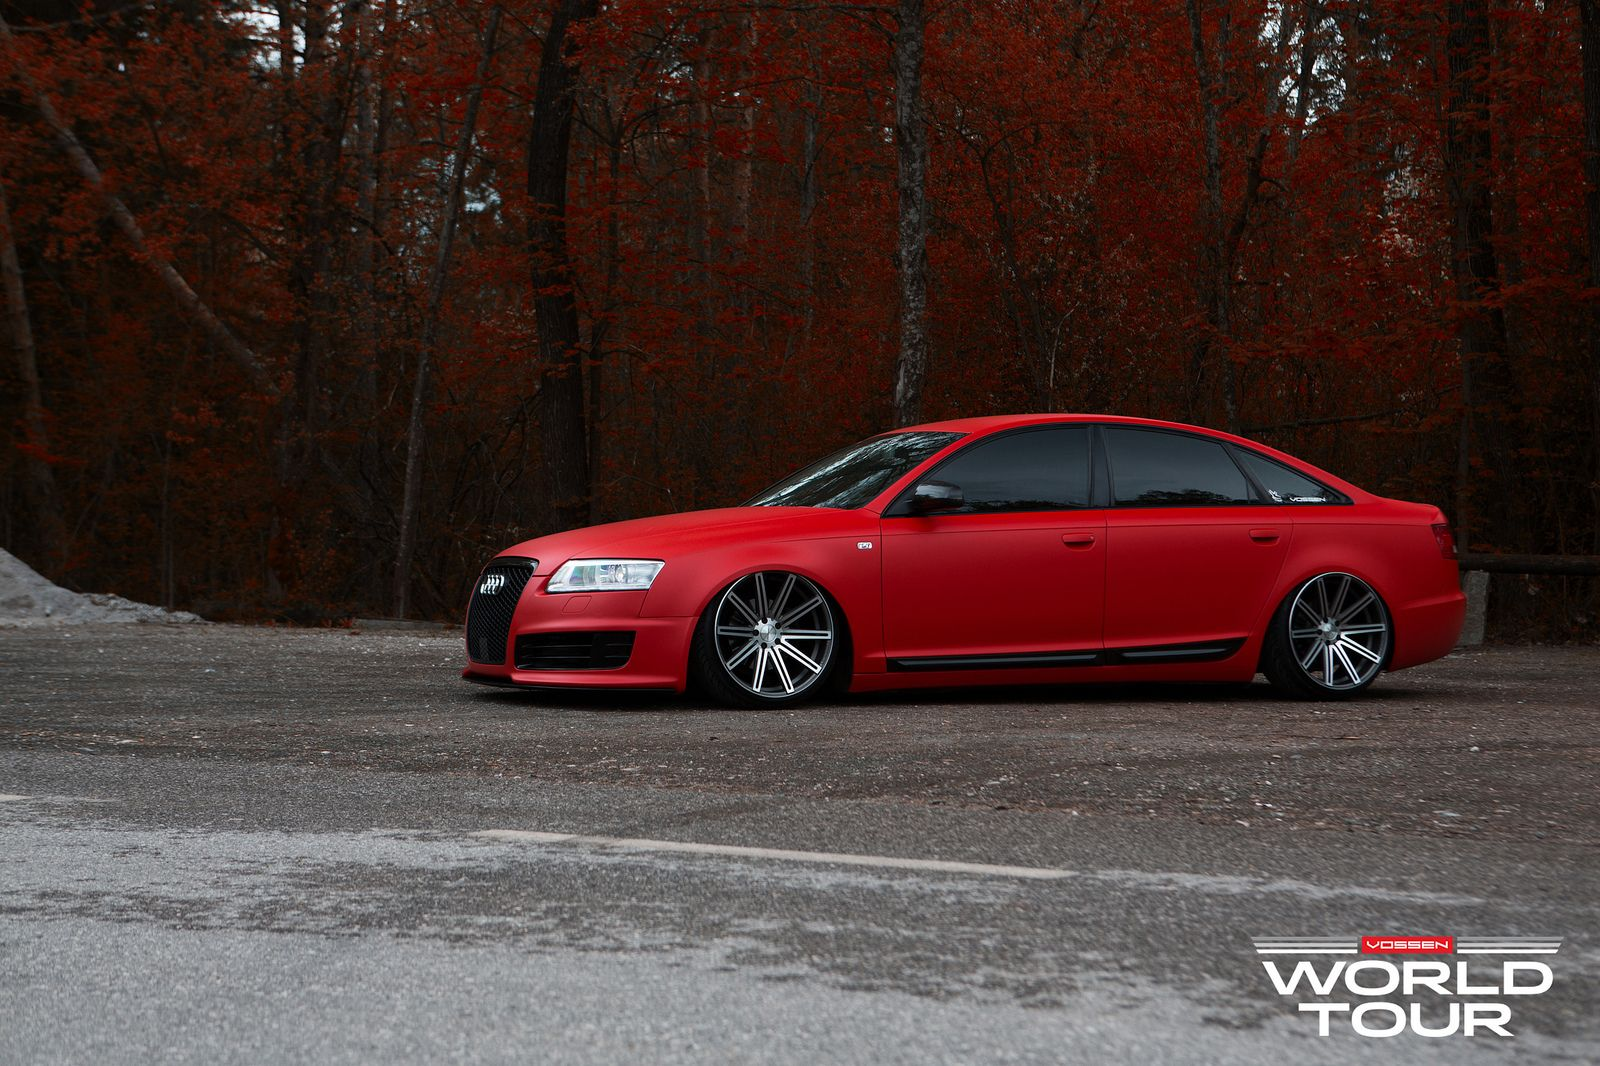 Audi A6 C6 Is A Red Rooster On Vossen Rims Hot Rides Pinterest